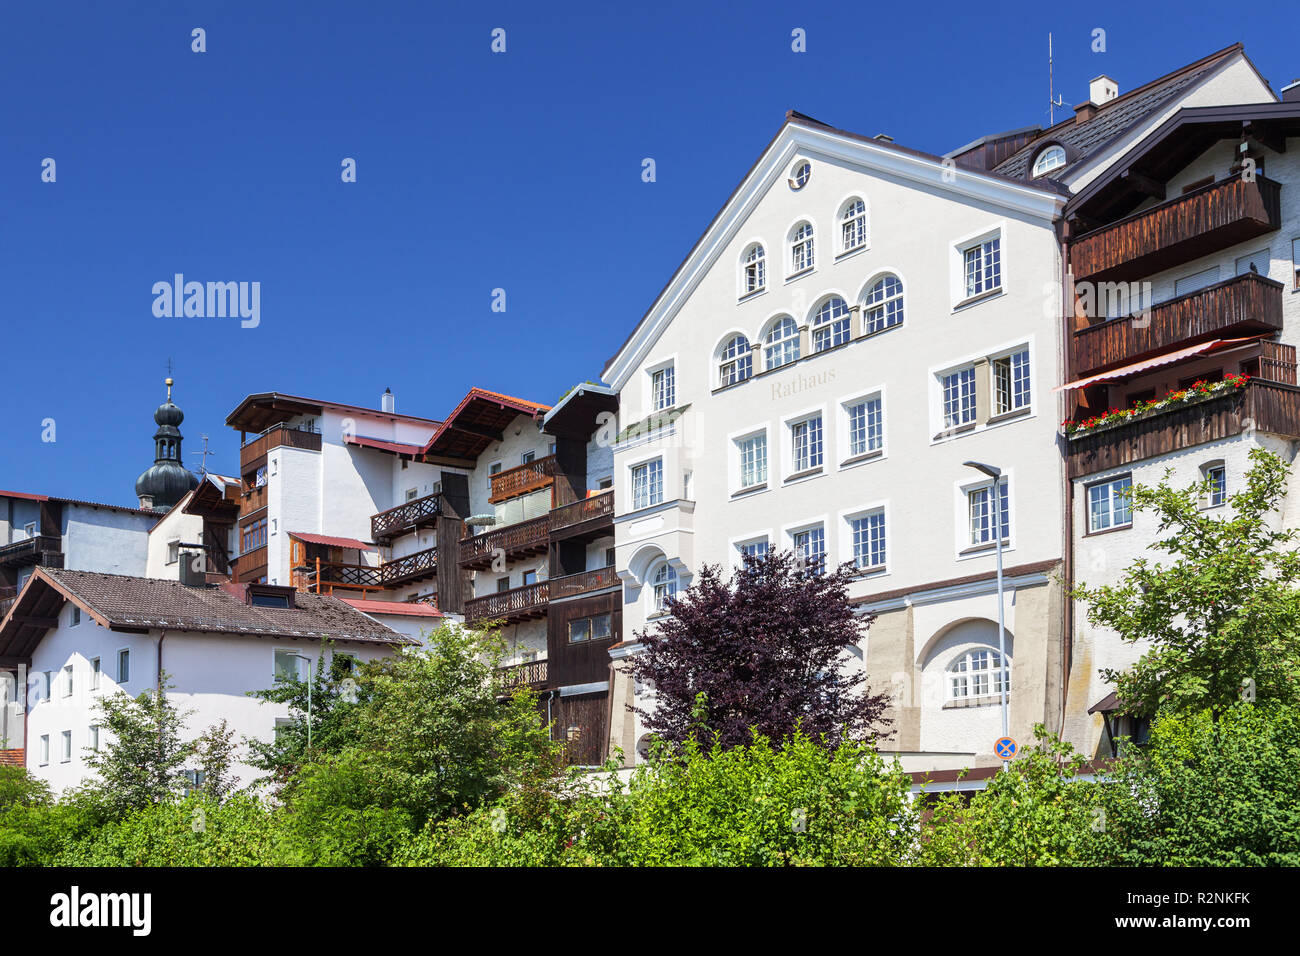 Trostberger organs with town hall, Trostberg an der Alz, Chiemgau, Upper Bavaria, Bavaria, Southern Germany, Germany, Europe - Stock Image